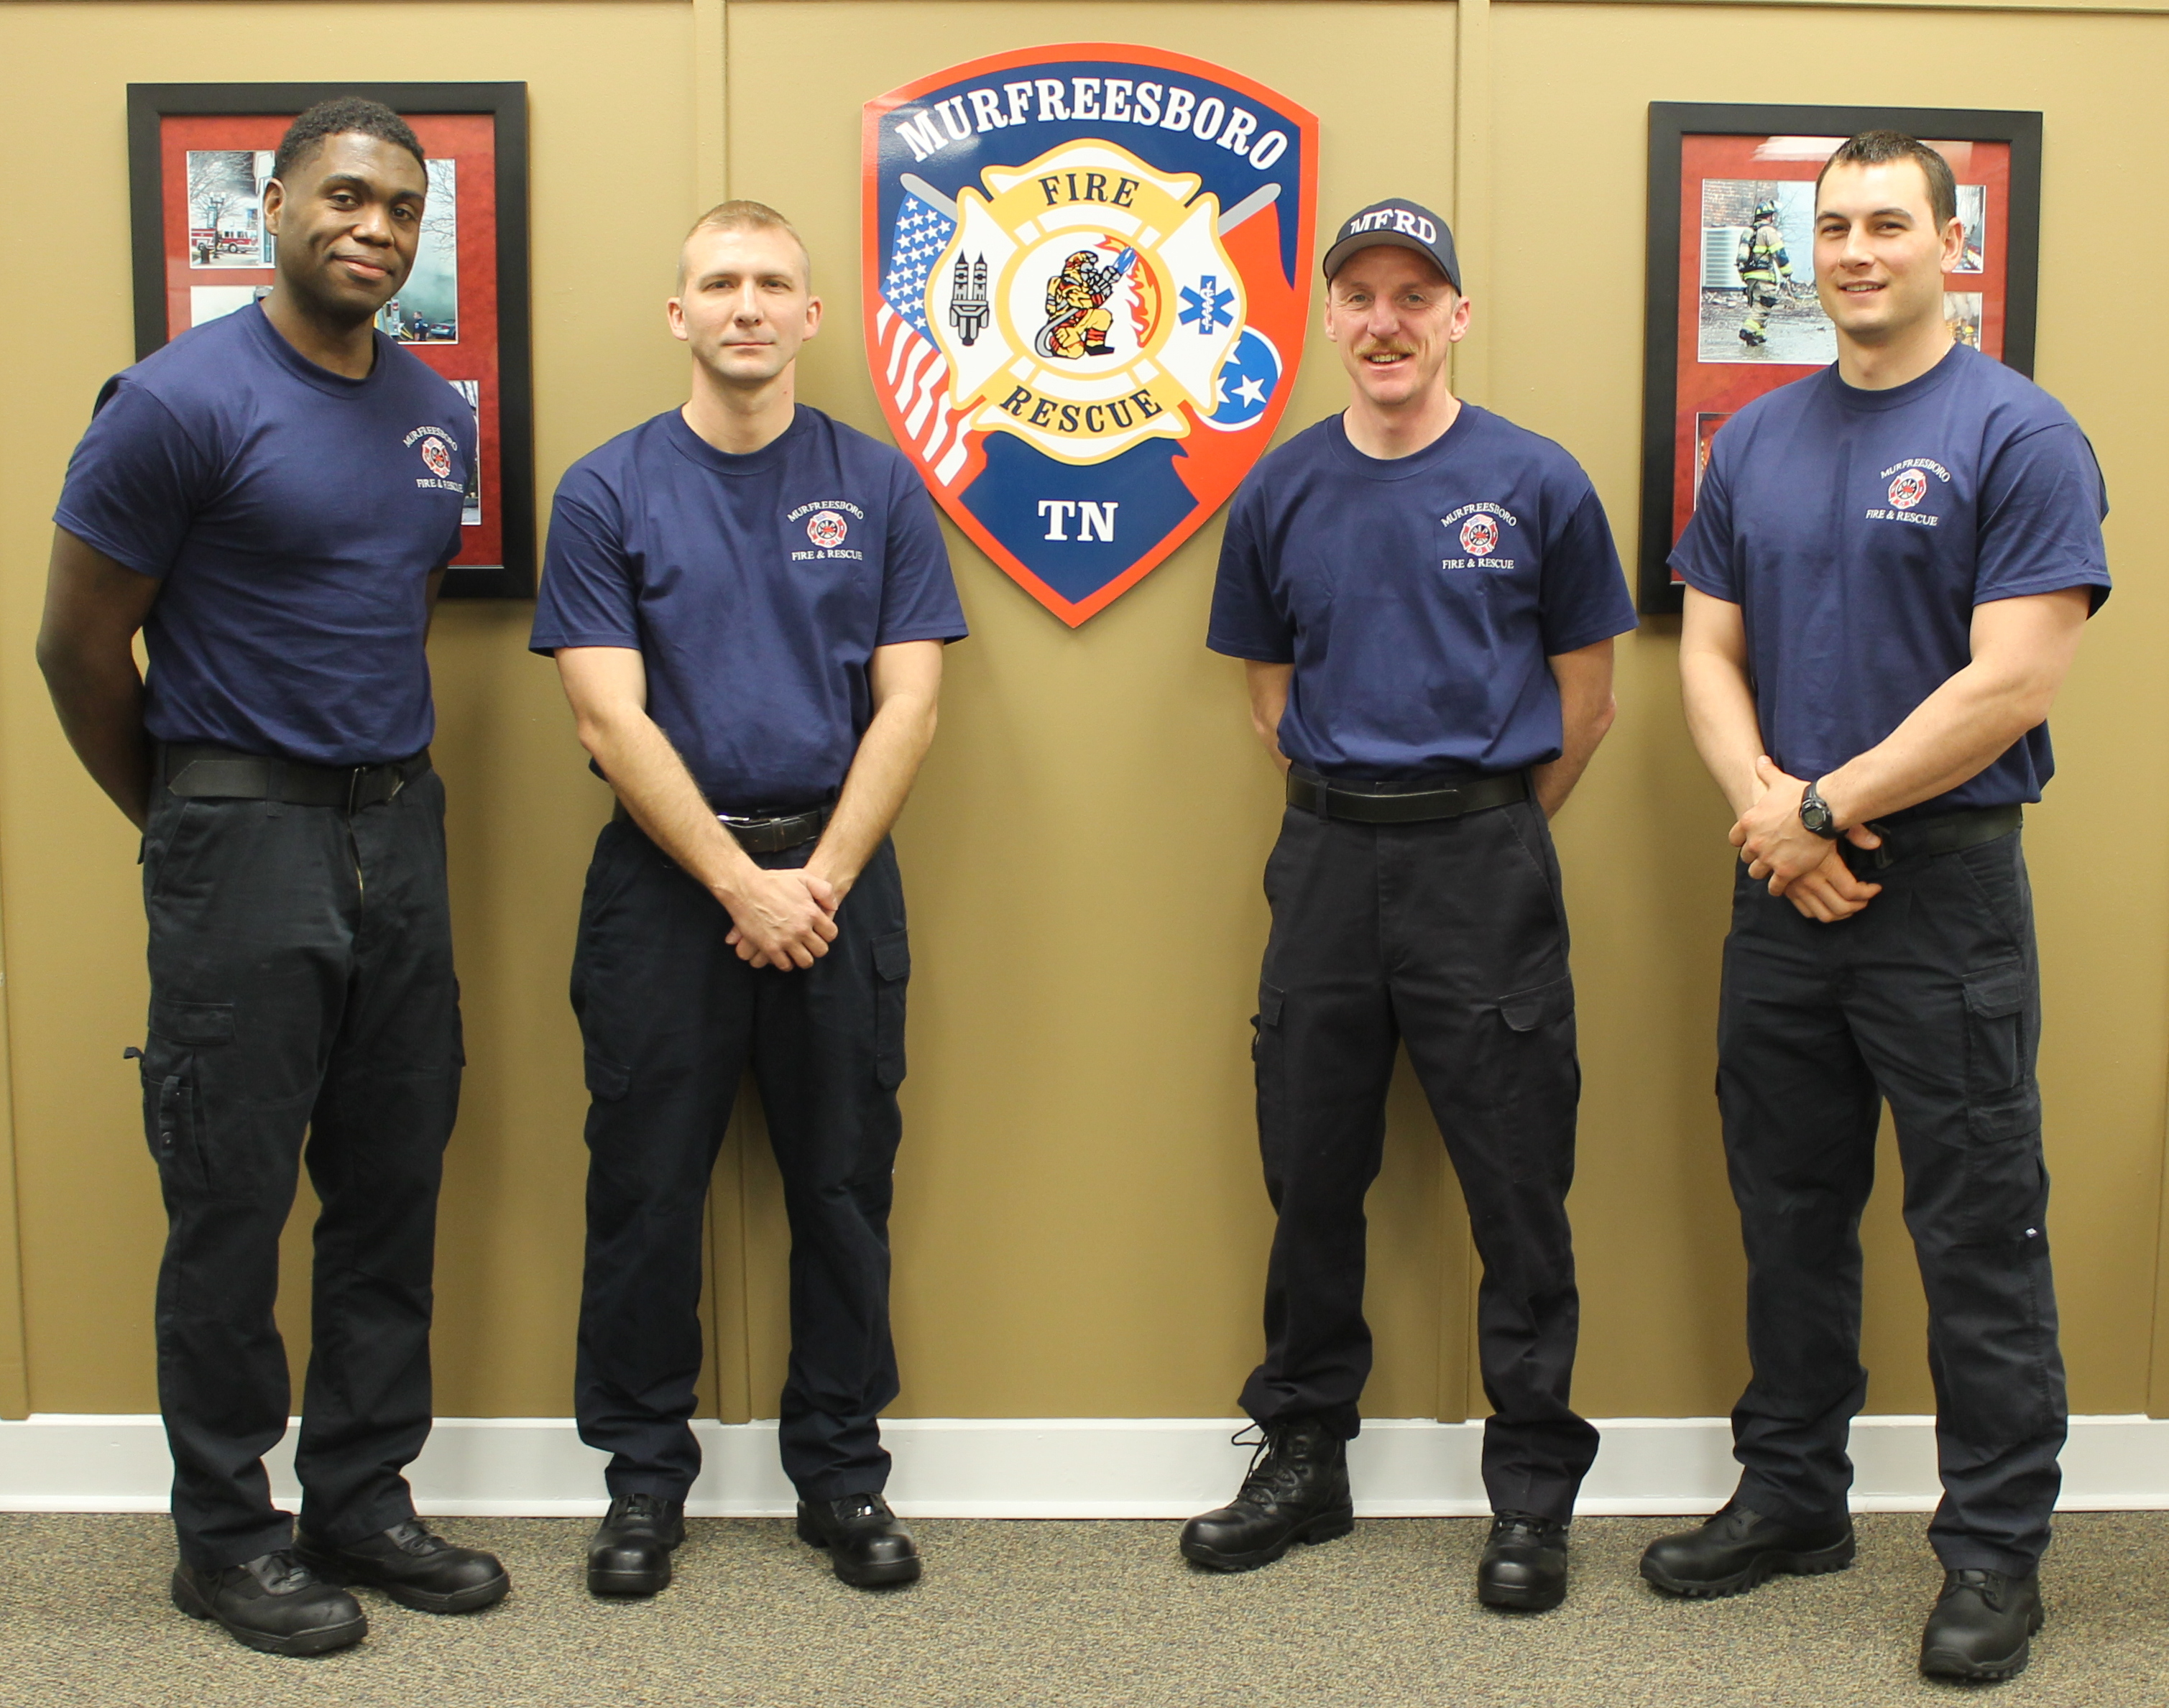 Welcome four NEW firefighters to Murfreesboro